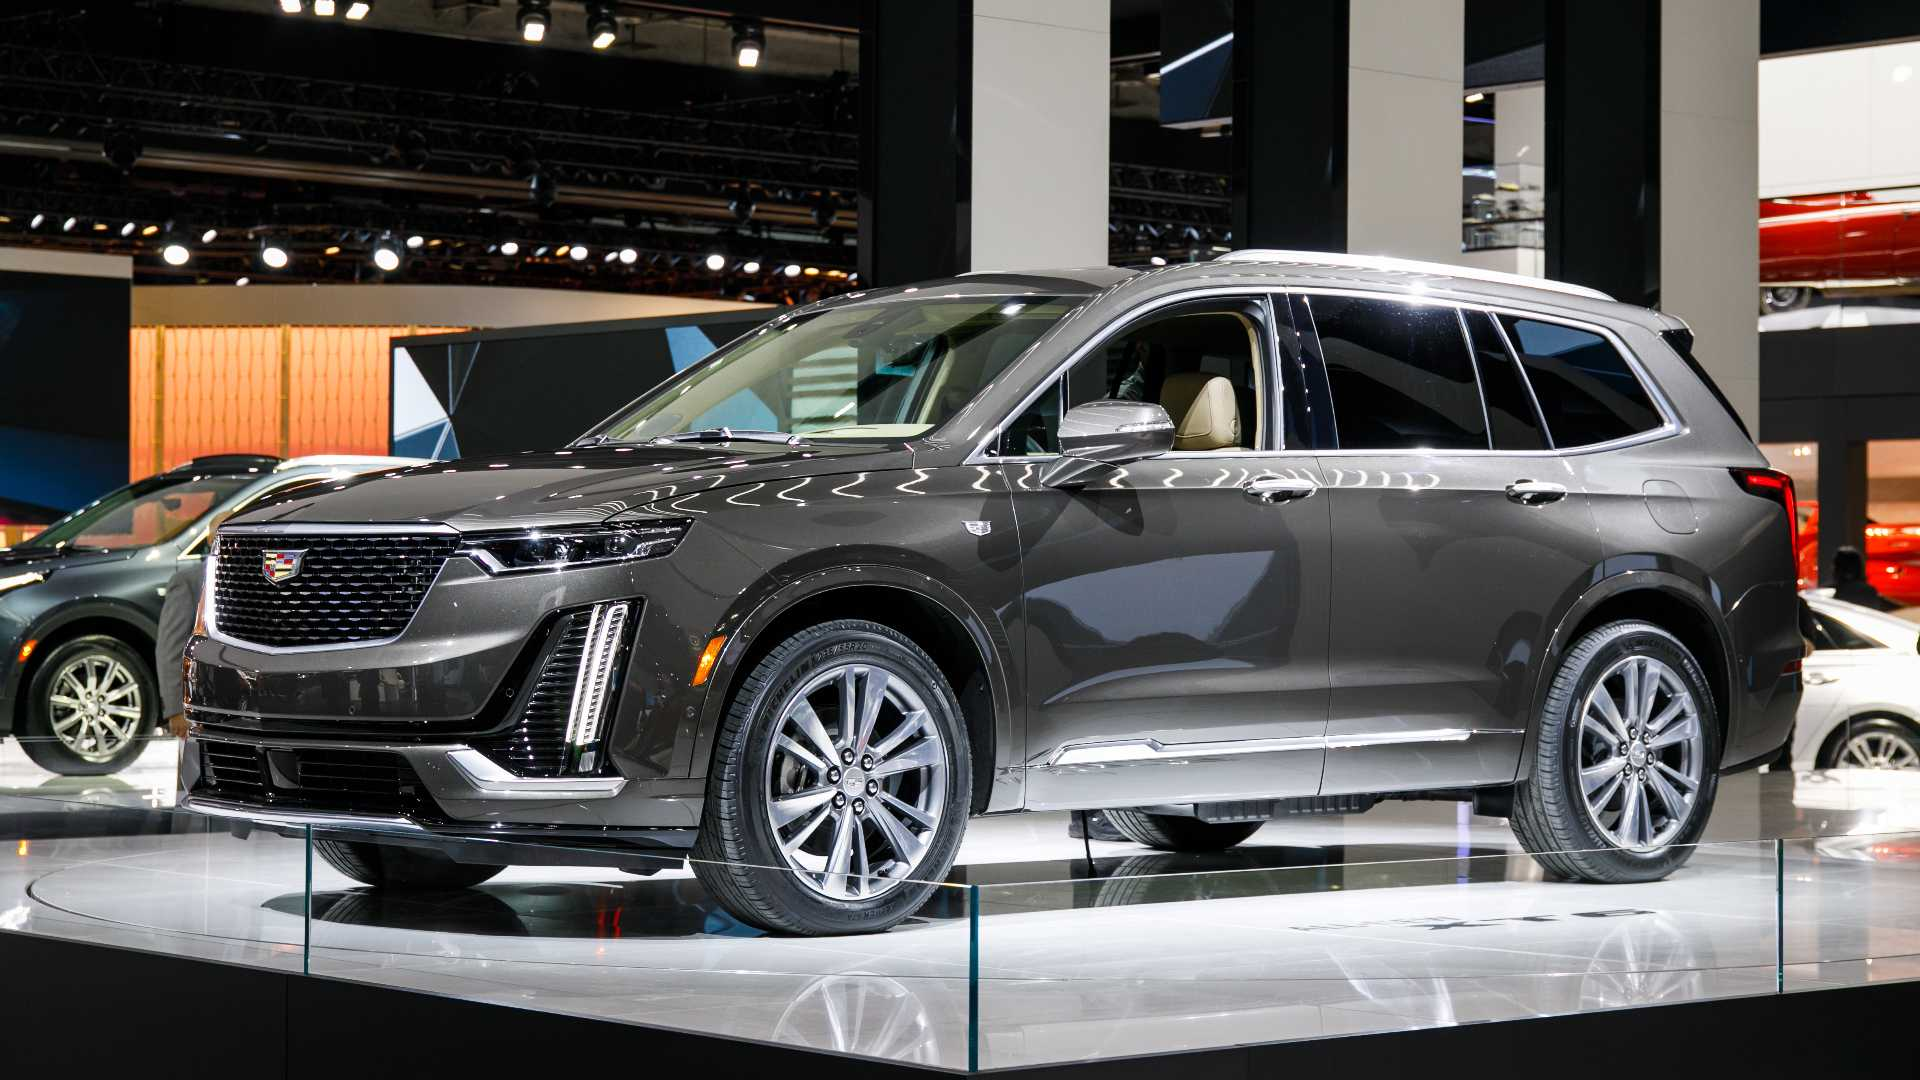 94 The Best 2020 Cadillac Xt6 Interior Colors Ratings